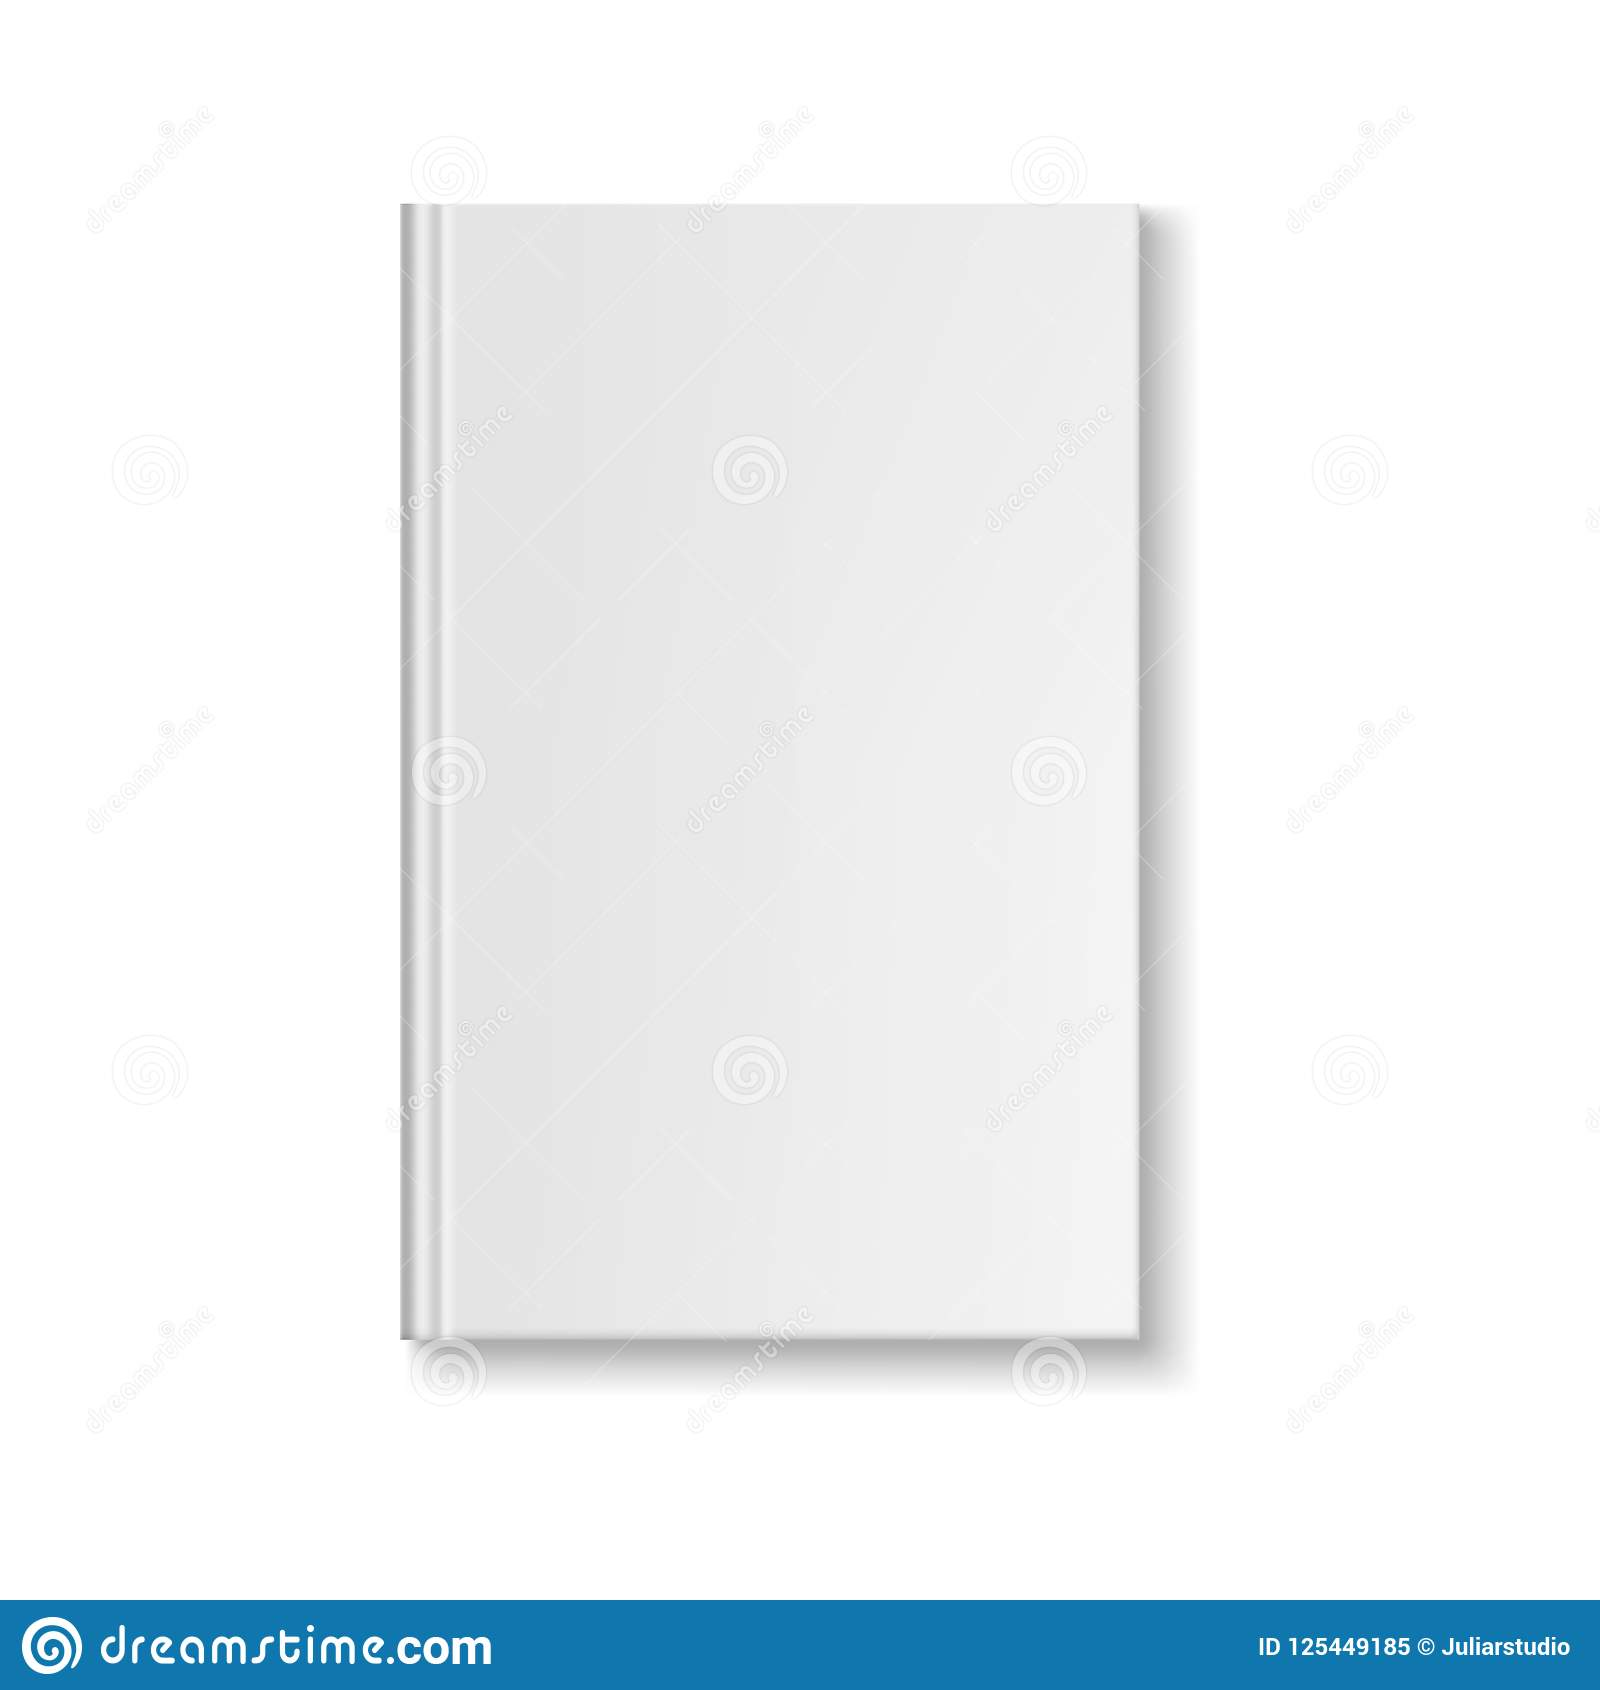 blank book cover template stock illustration illustration of